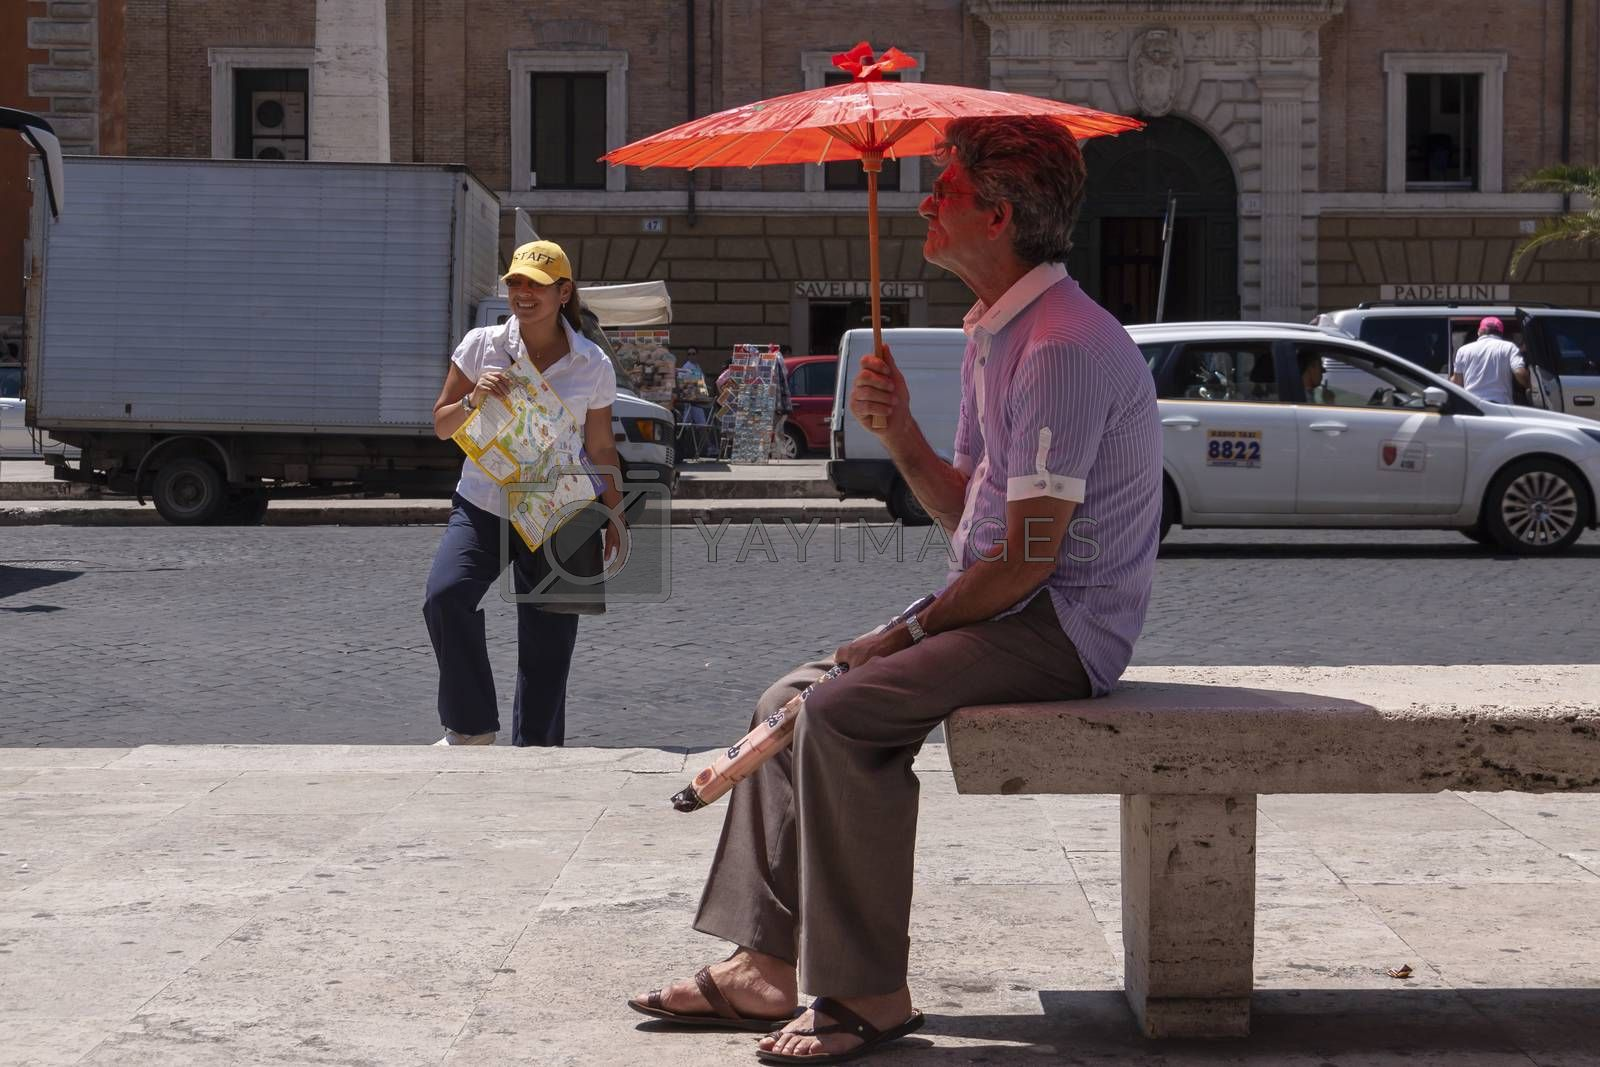 Rome, Italy - June 28, 2010: A street vendor of umbrellas, remains seated on a bench, next to a woman who works as a tour guide in Rome.